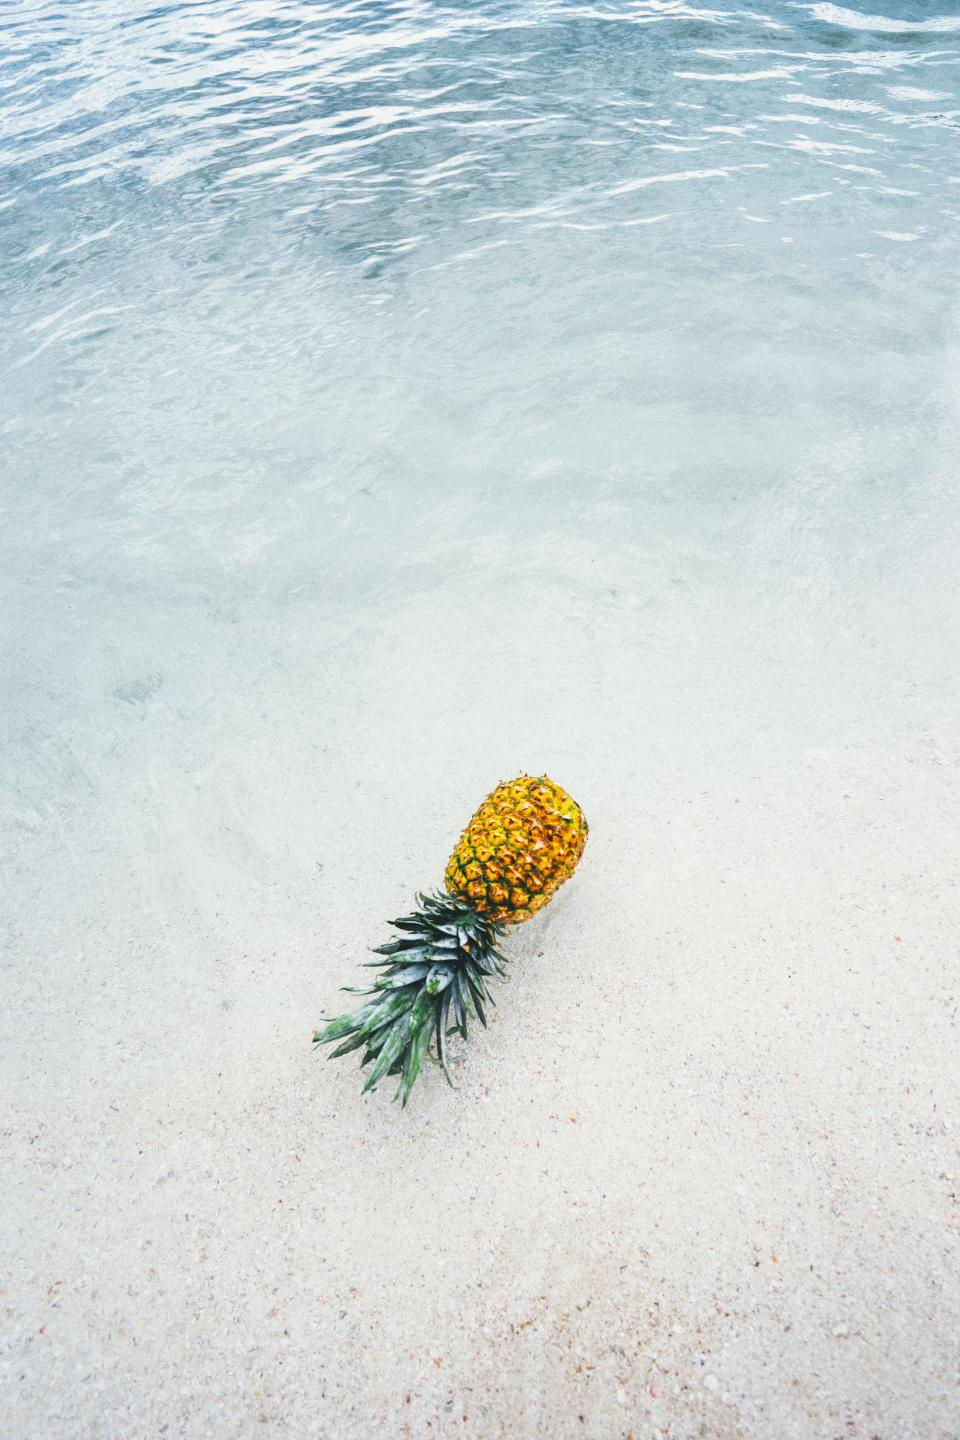 pineapple dessert food appetizer fruit juice beach ocean sea white sand